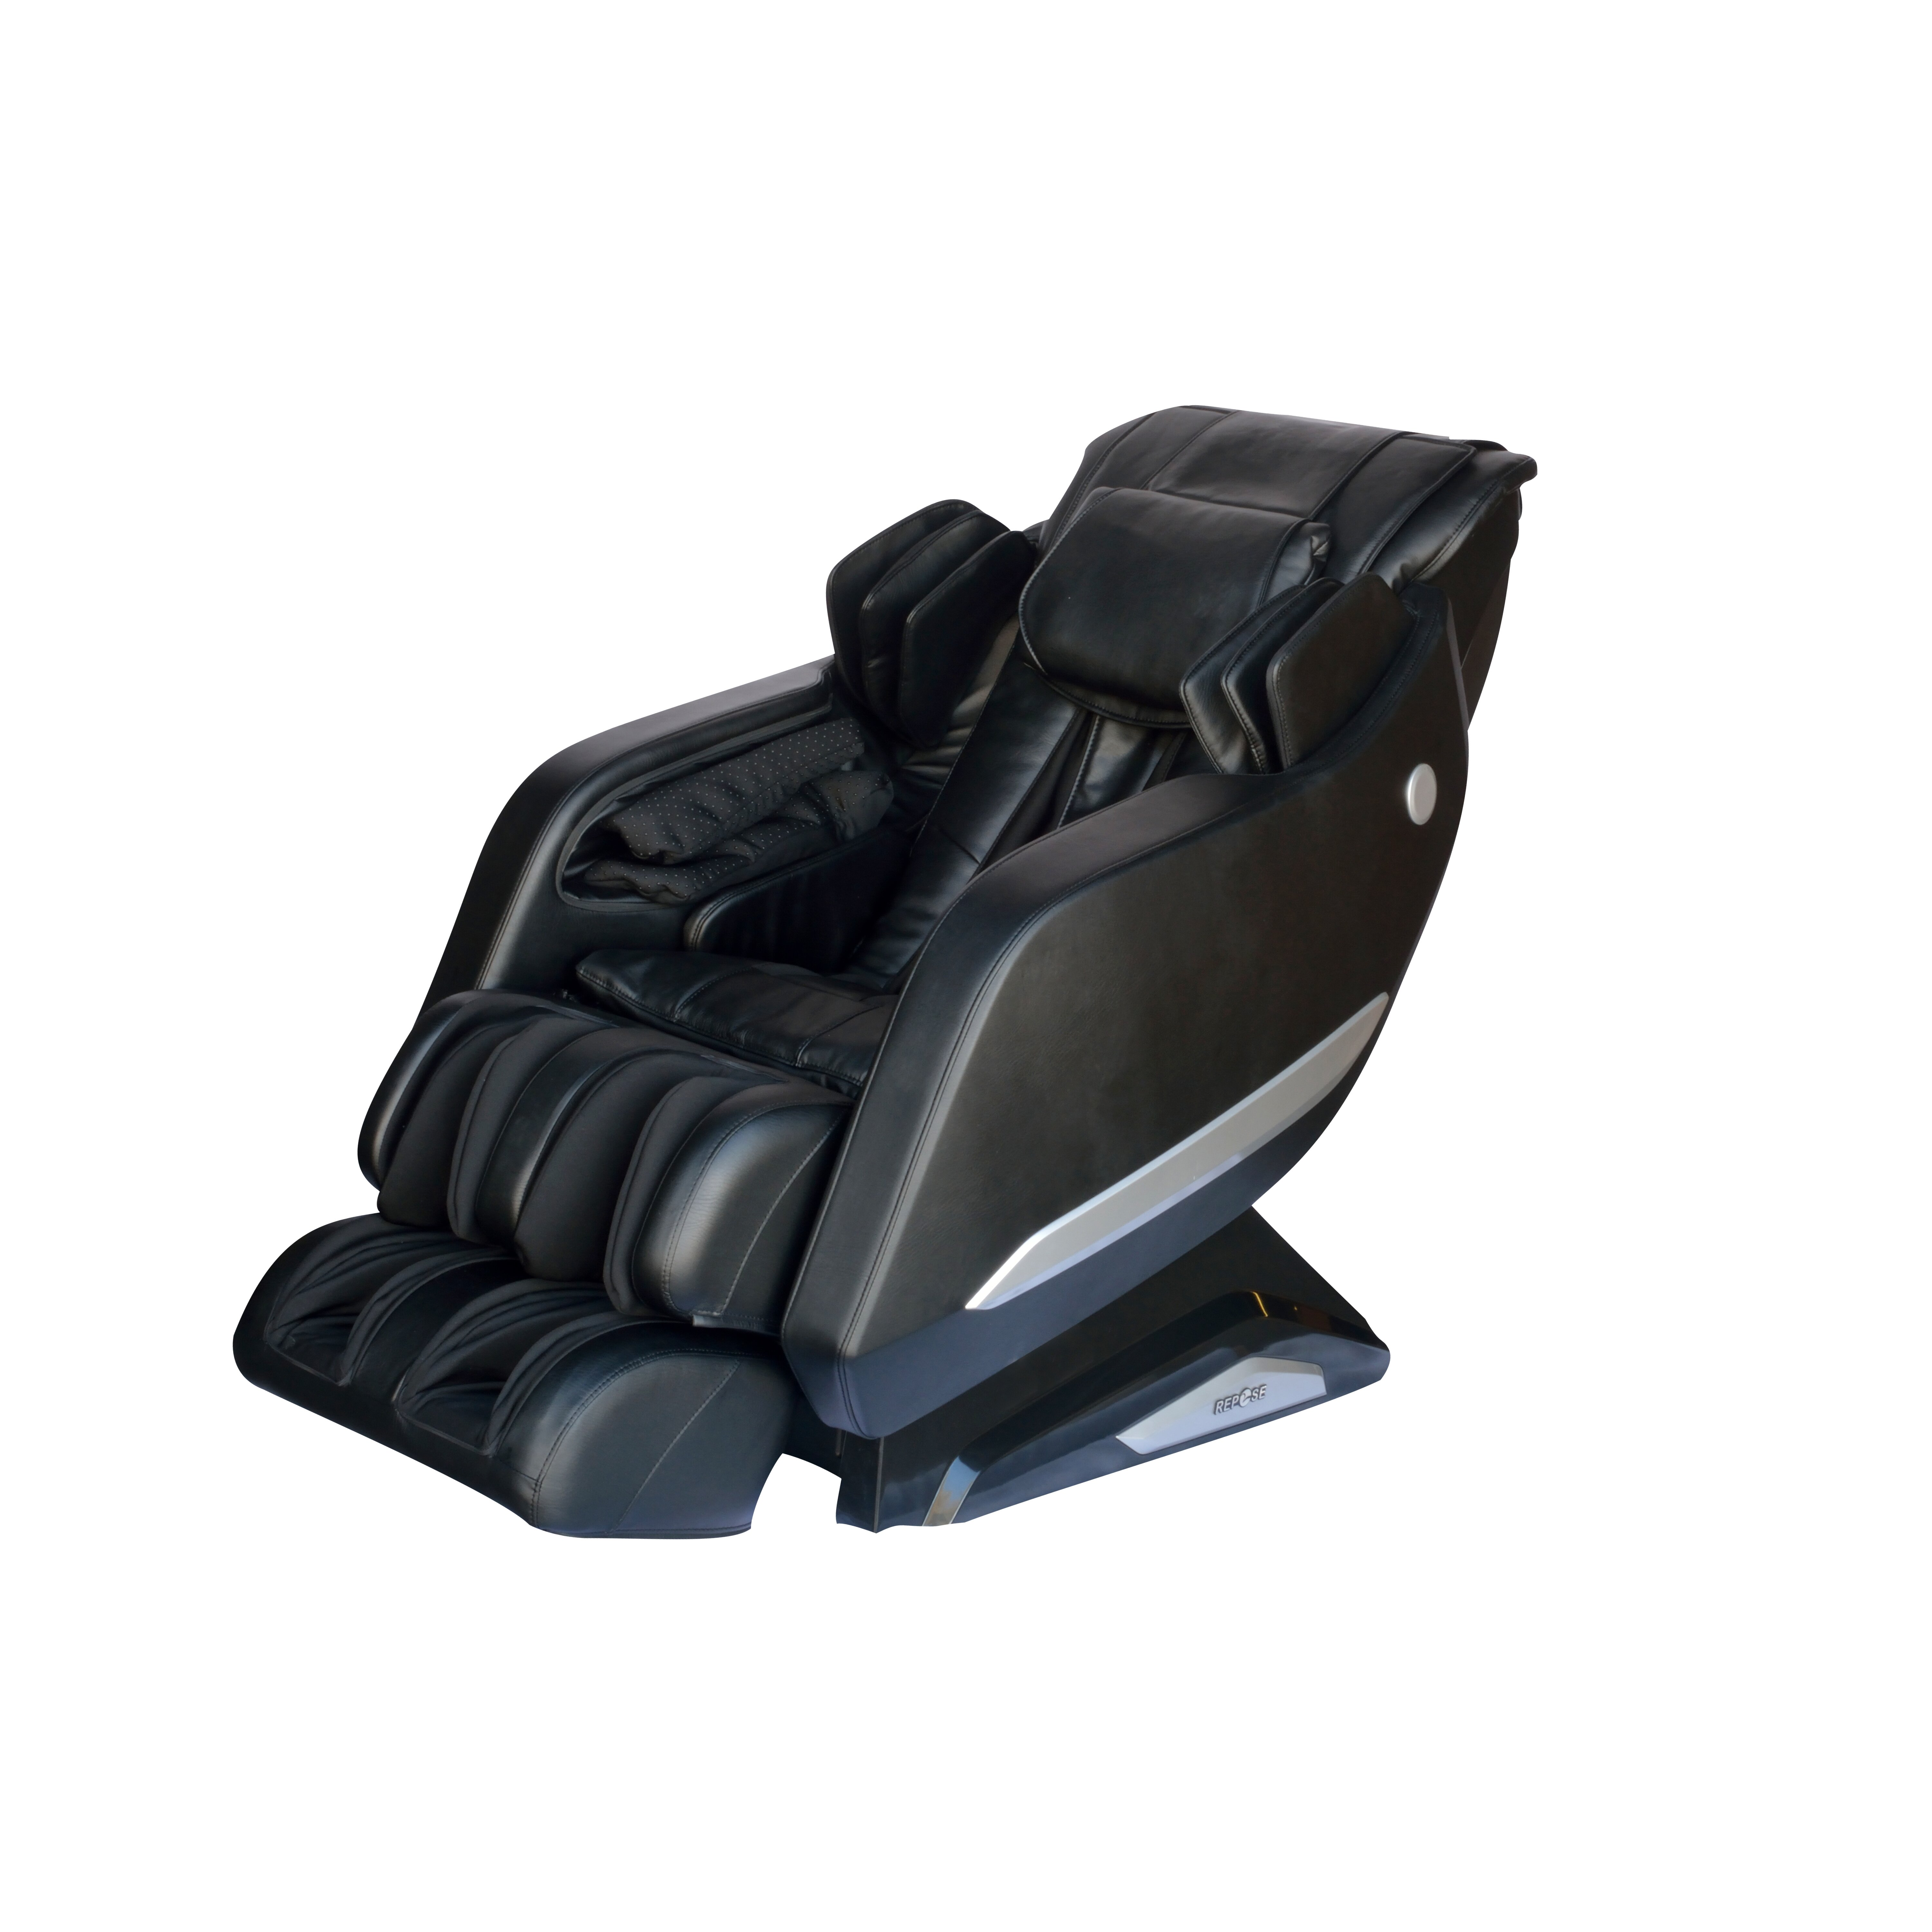 Repose Faux Leather Reclining Zero Gravity Massage Chair